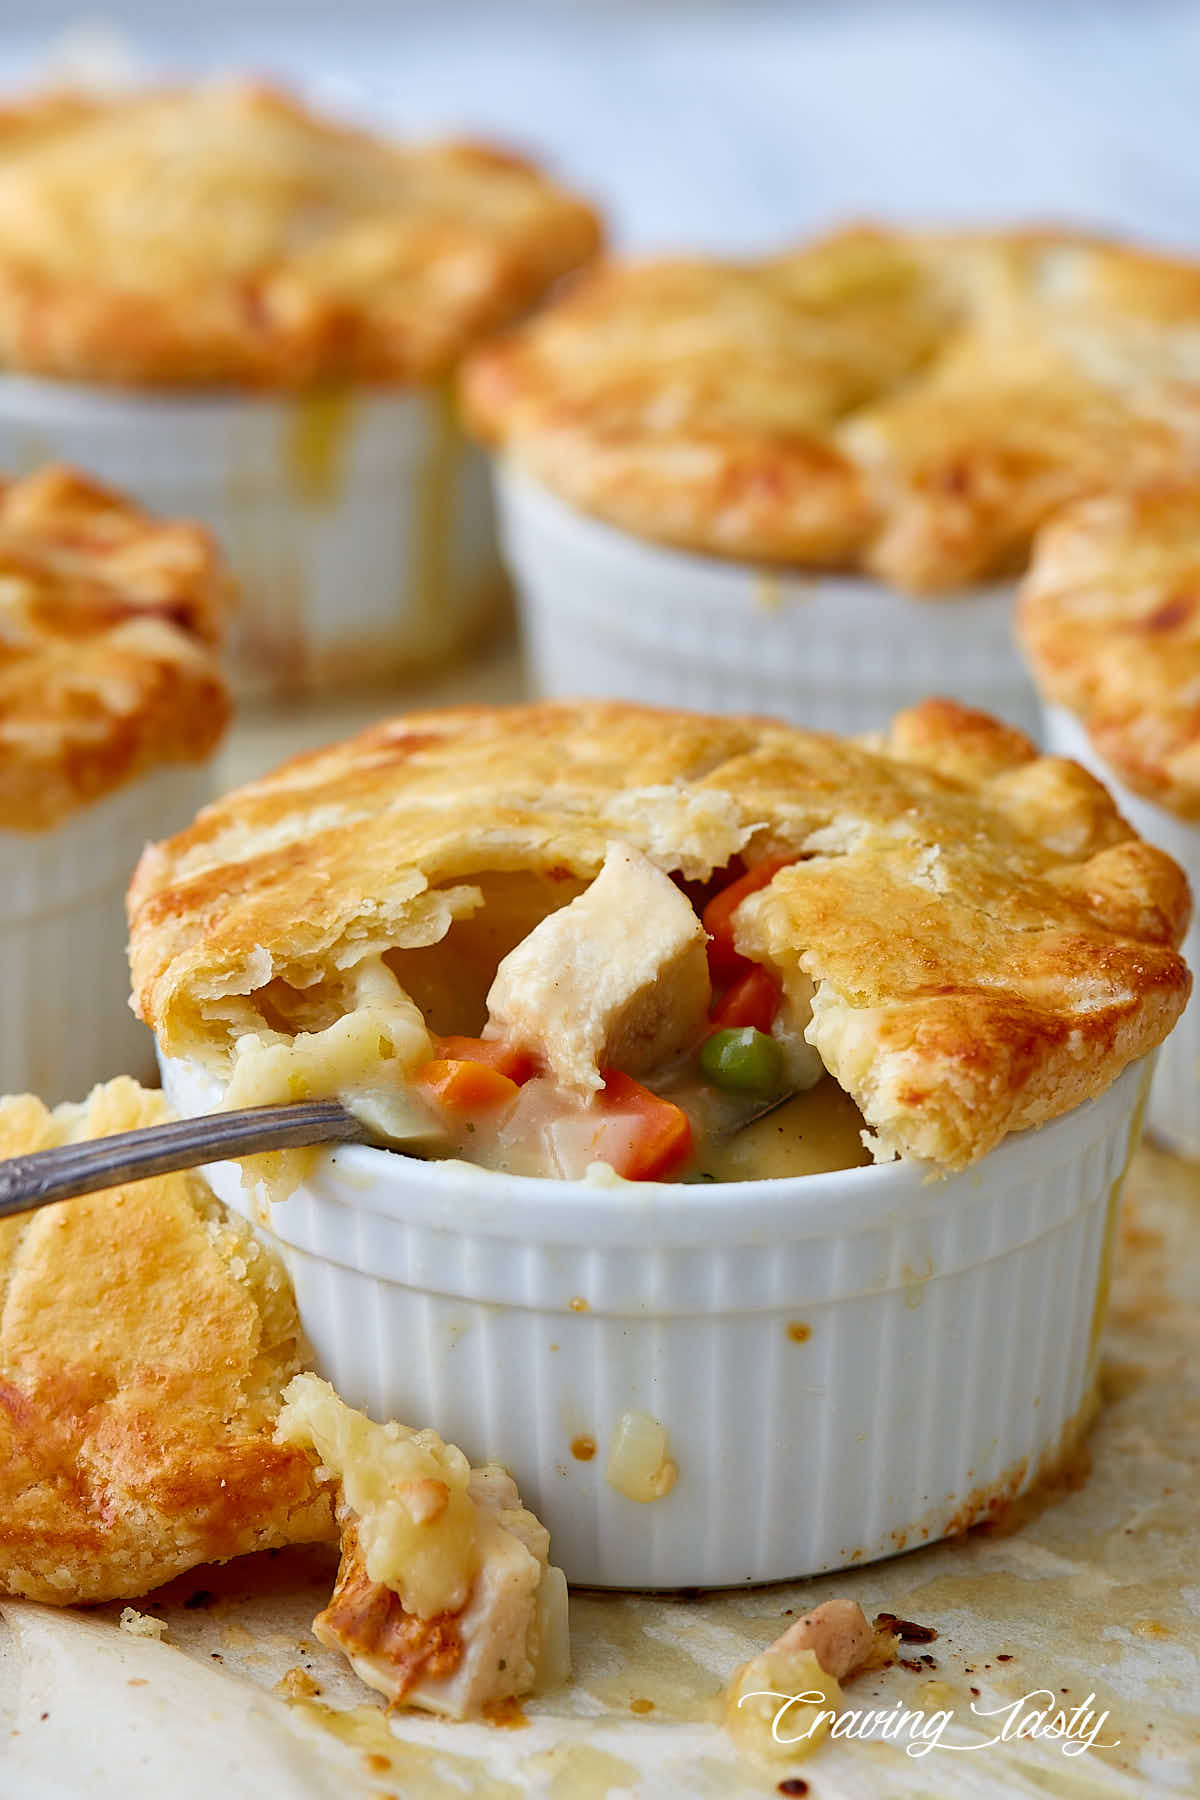 Several chicken pot pies on a baking dish, with the pie on the forefront split open and a spoon inserted into filling.